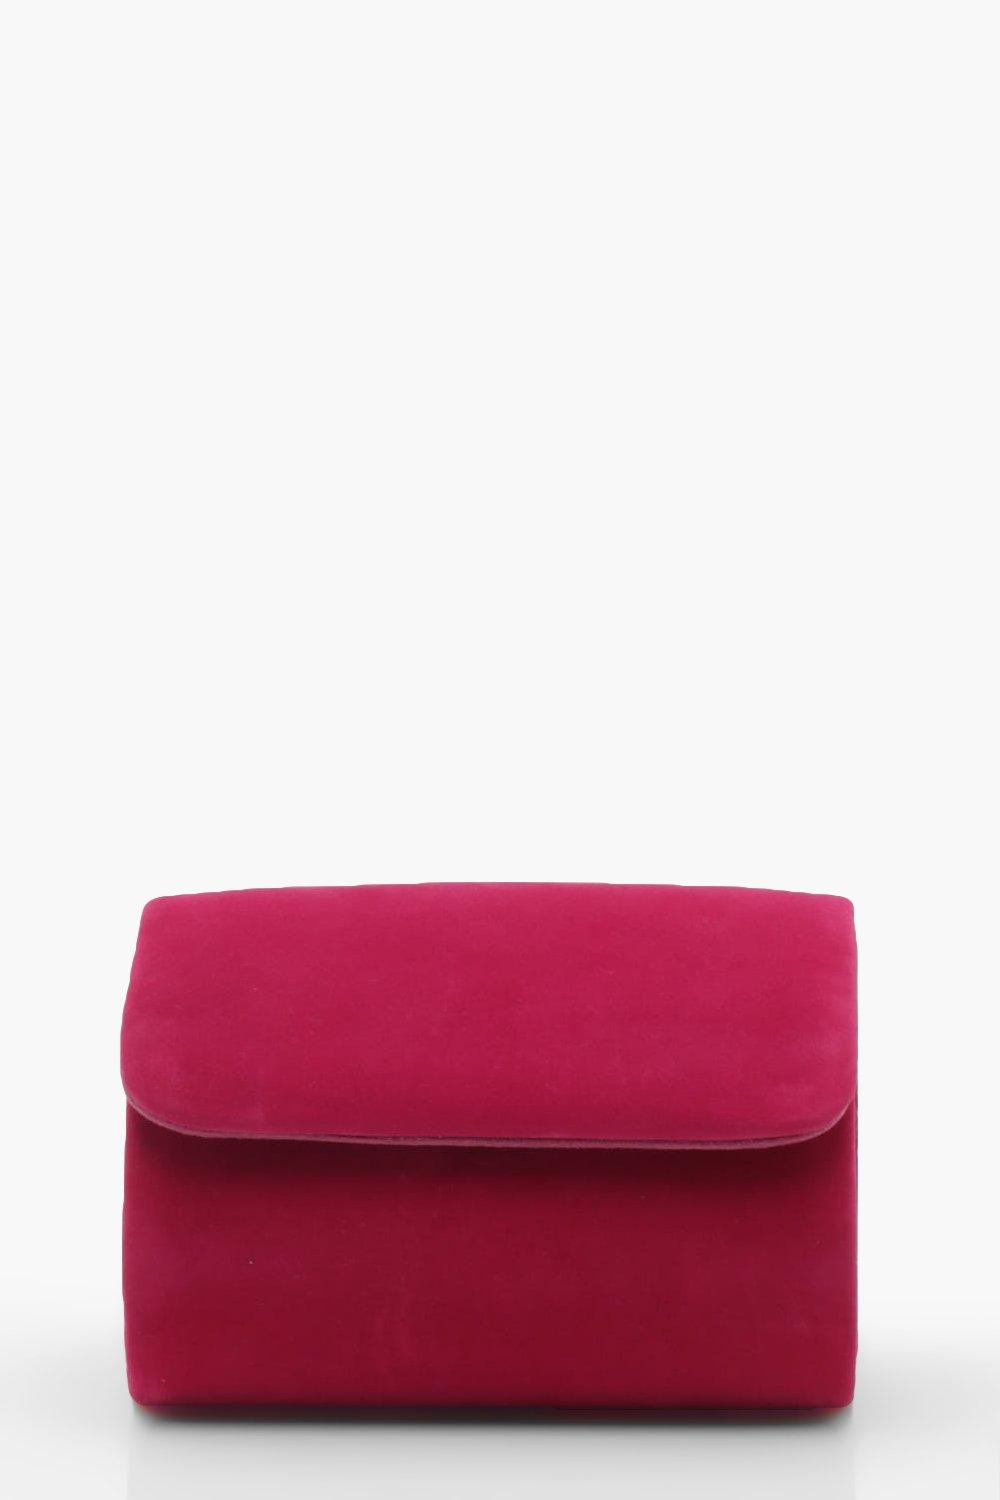 boohoo Womens Micro Mini Suedette Clutch And Chain Bag - Pink - One Size, Pink